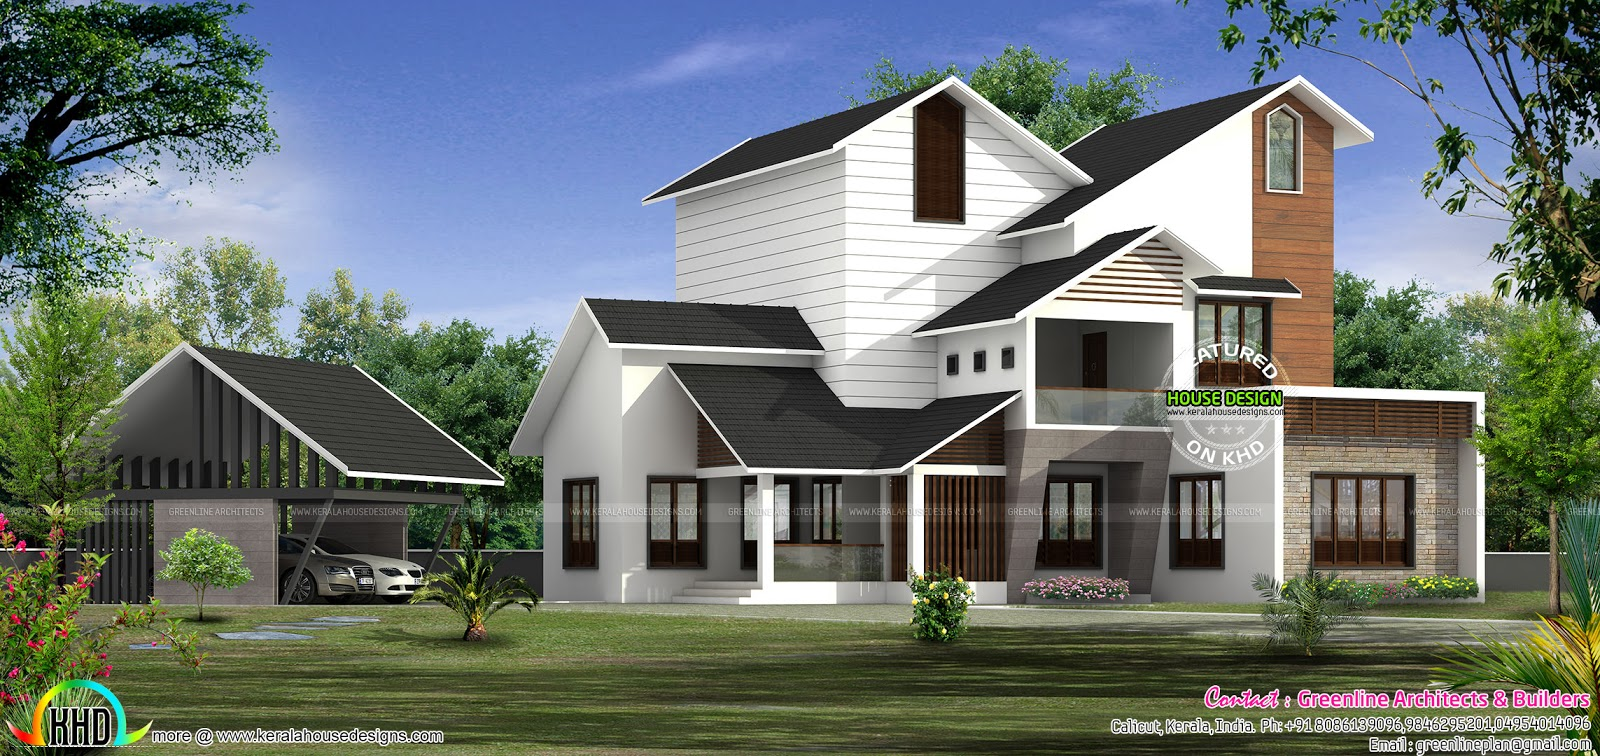 Modern mix sloped roof house plan Kerala home design and floor plans